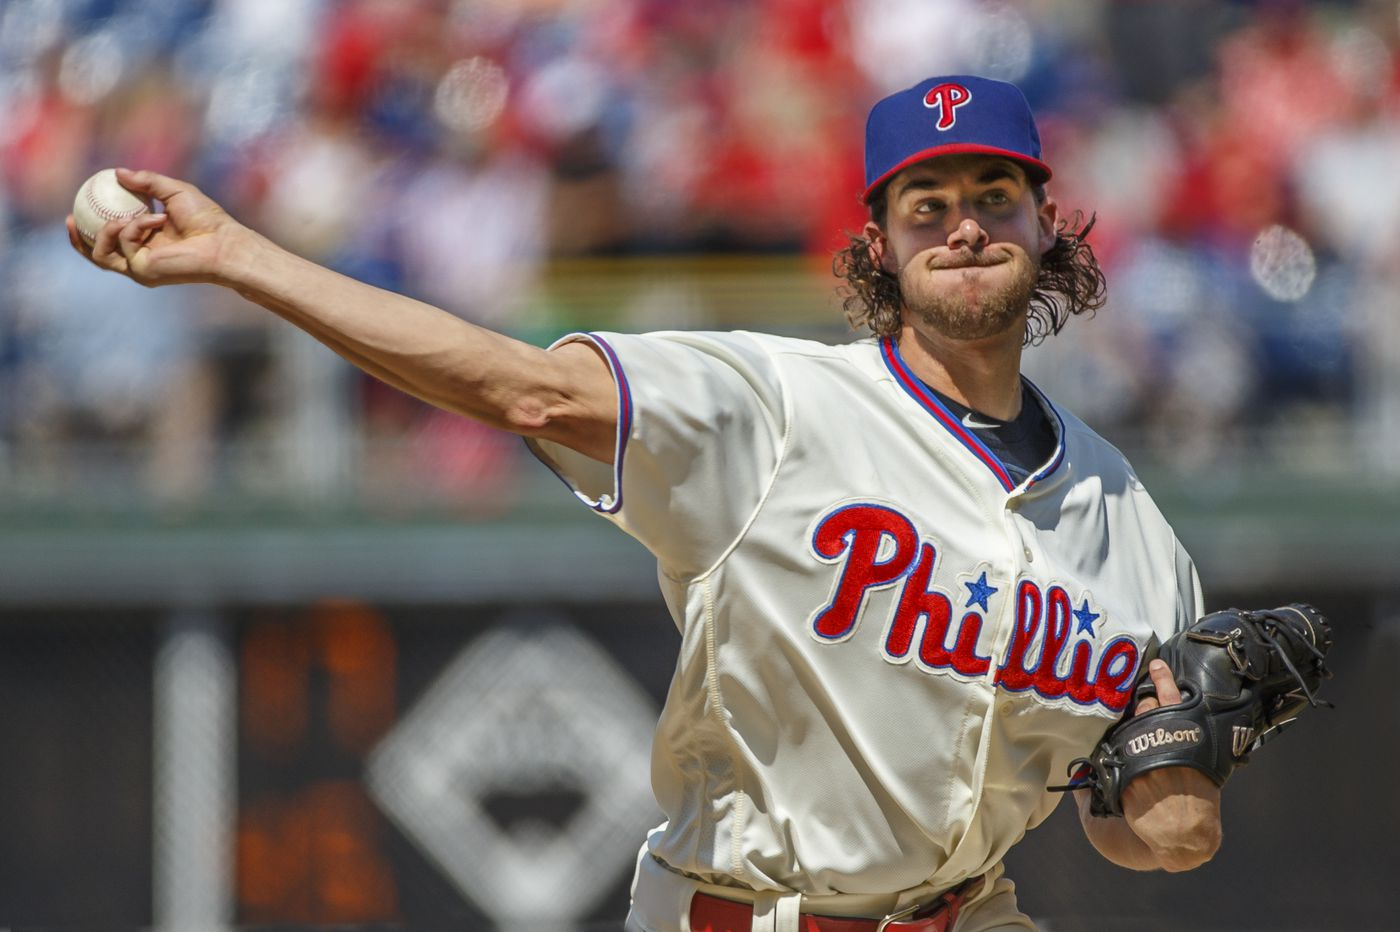 Phillies lose to Cubs on rare hiccup by Aaron Nola